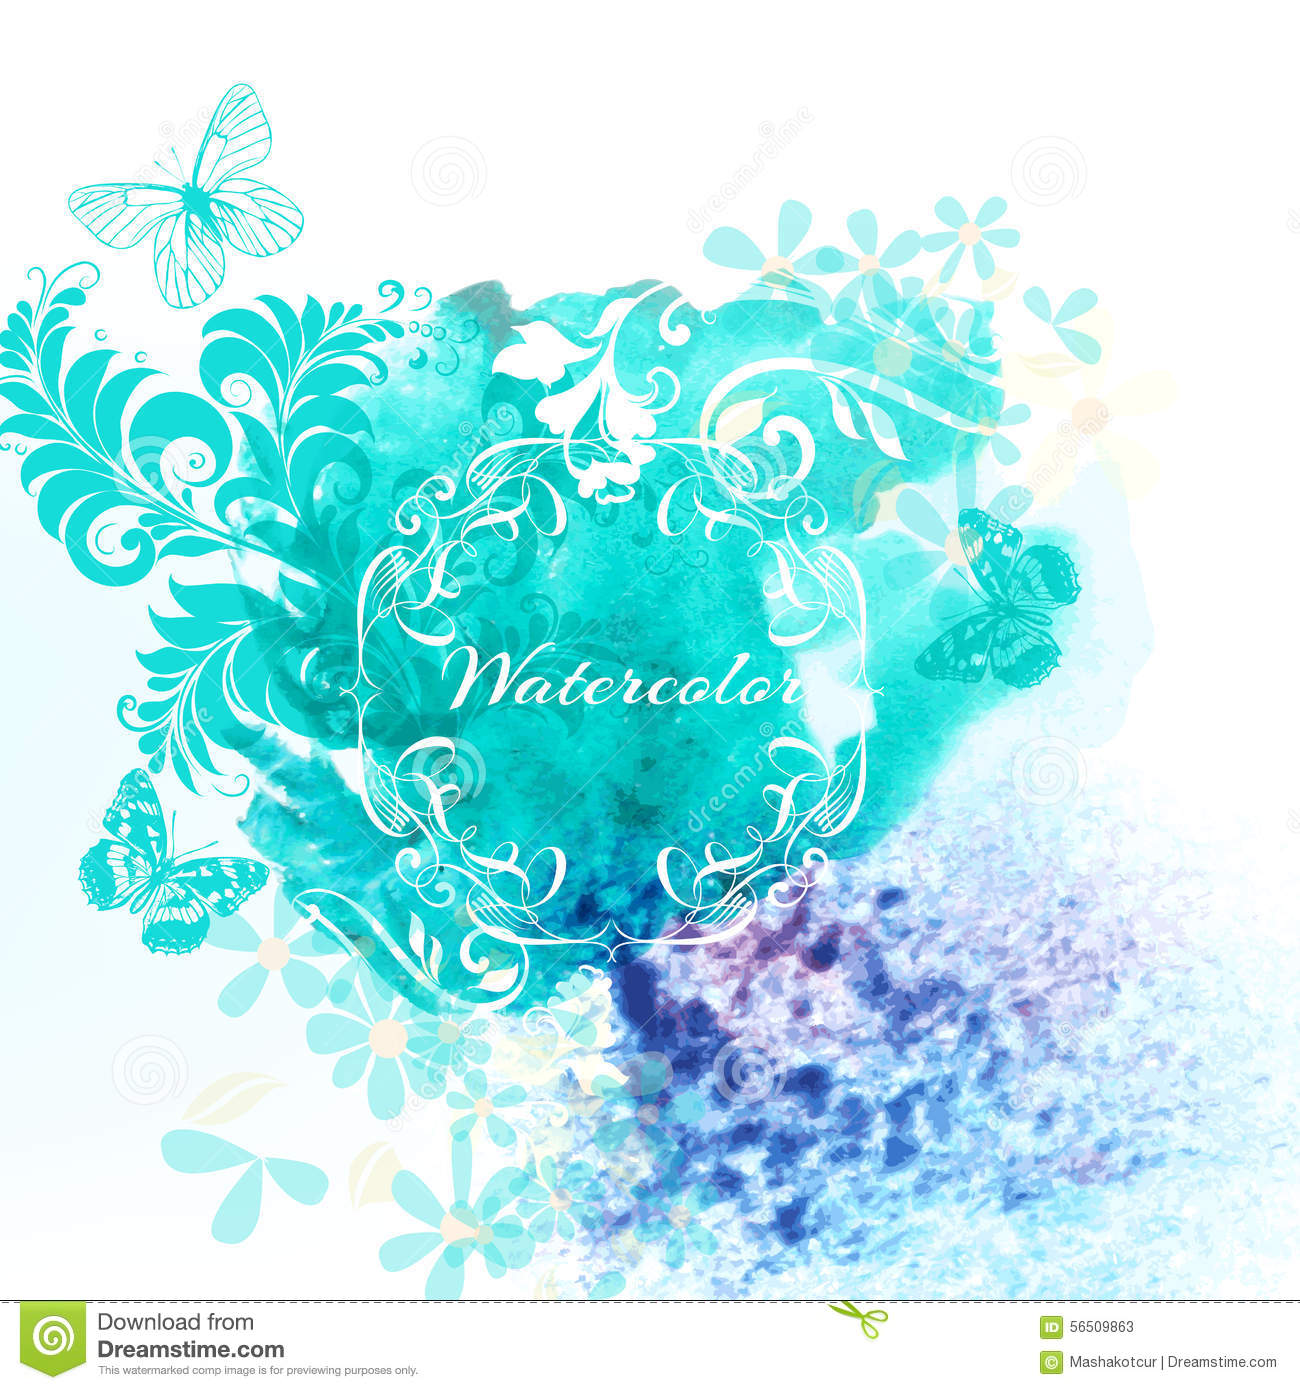 Watercolor Invitation Background With Blue Watercolor